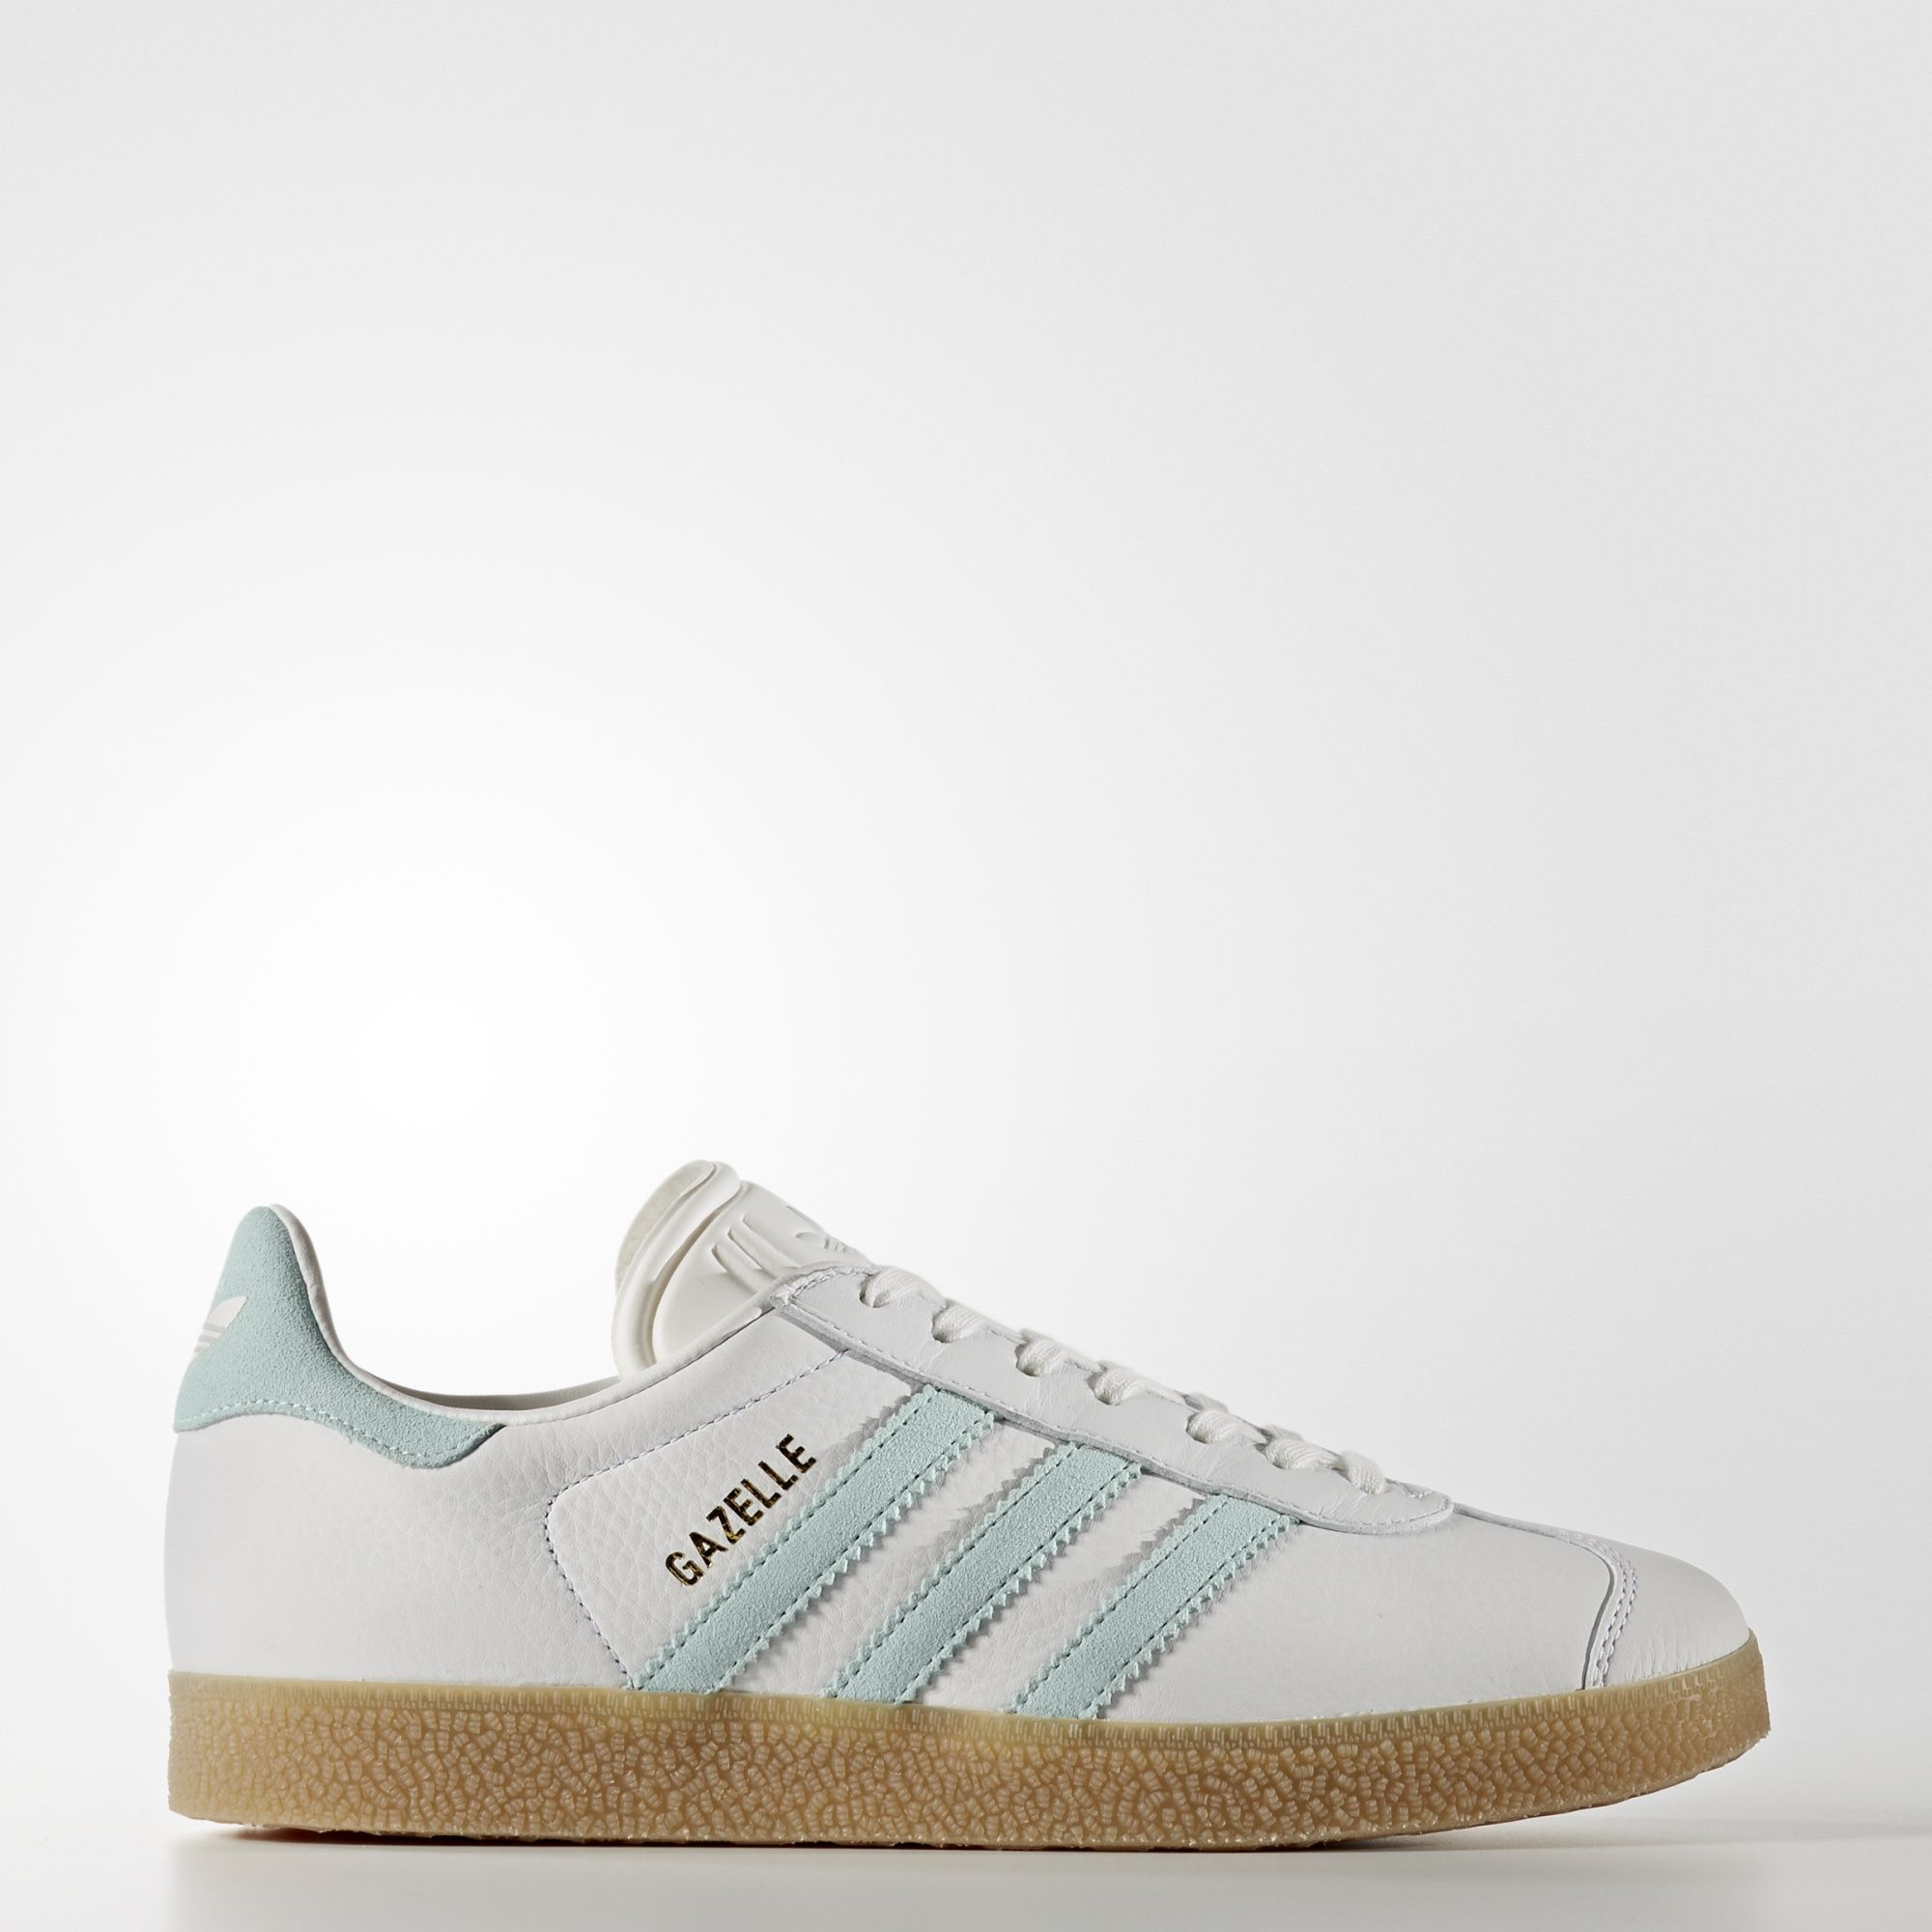 Pin by Nicole x on A Day At The Races | Adidas gazelle white